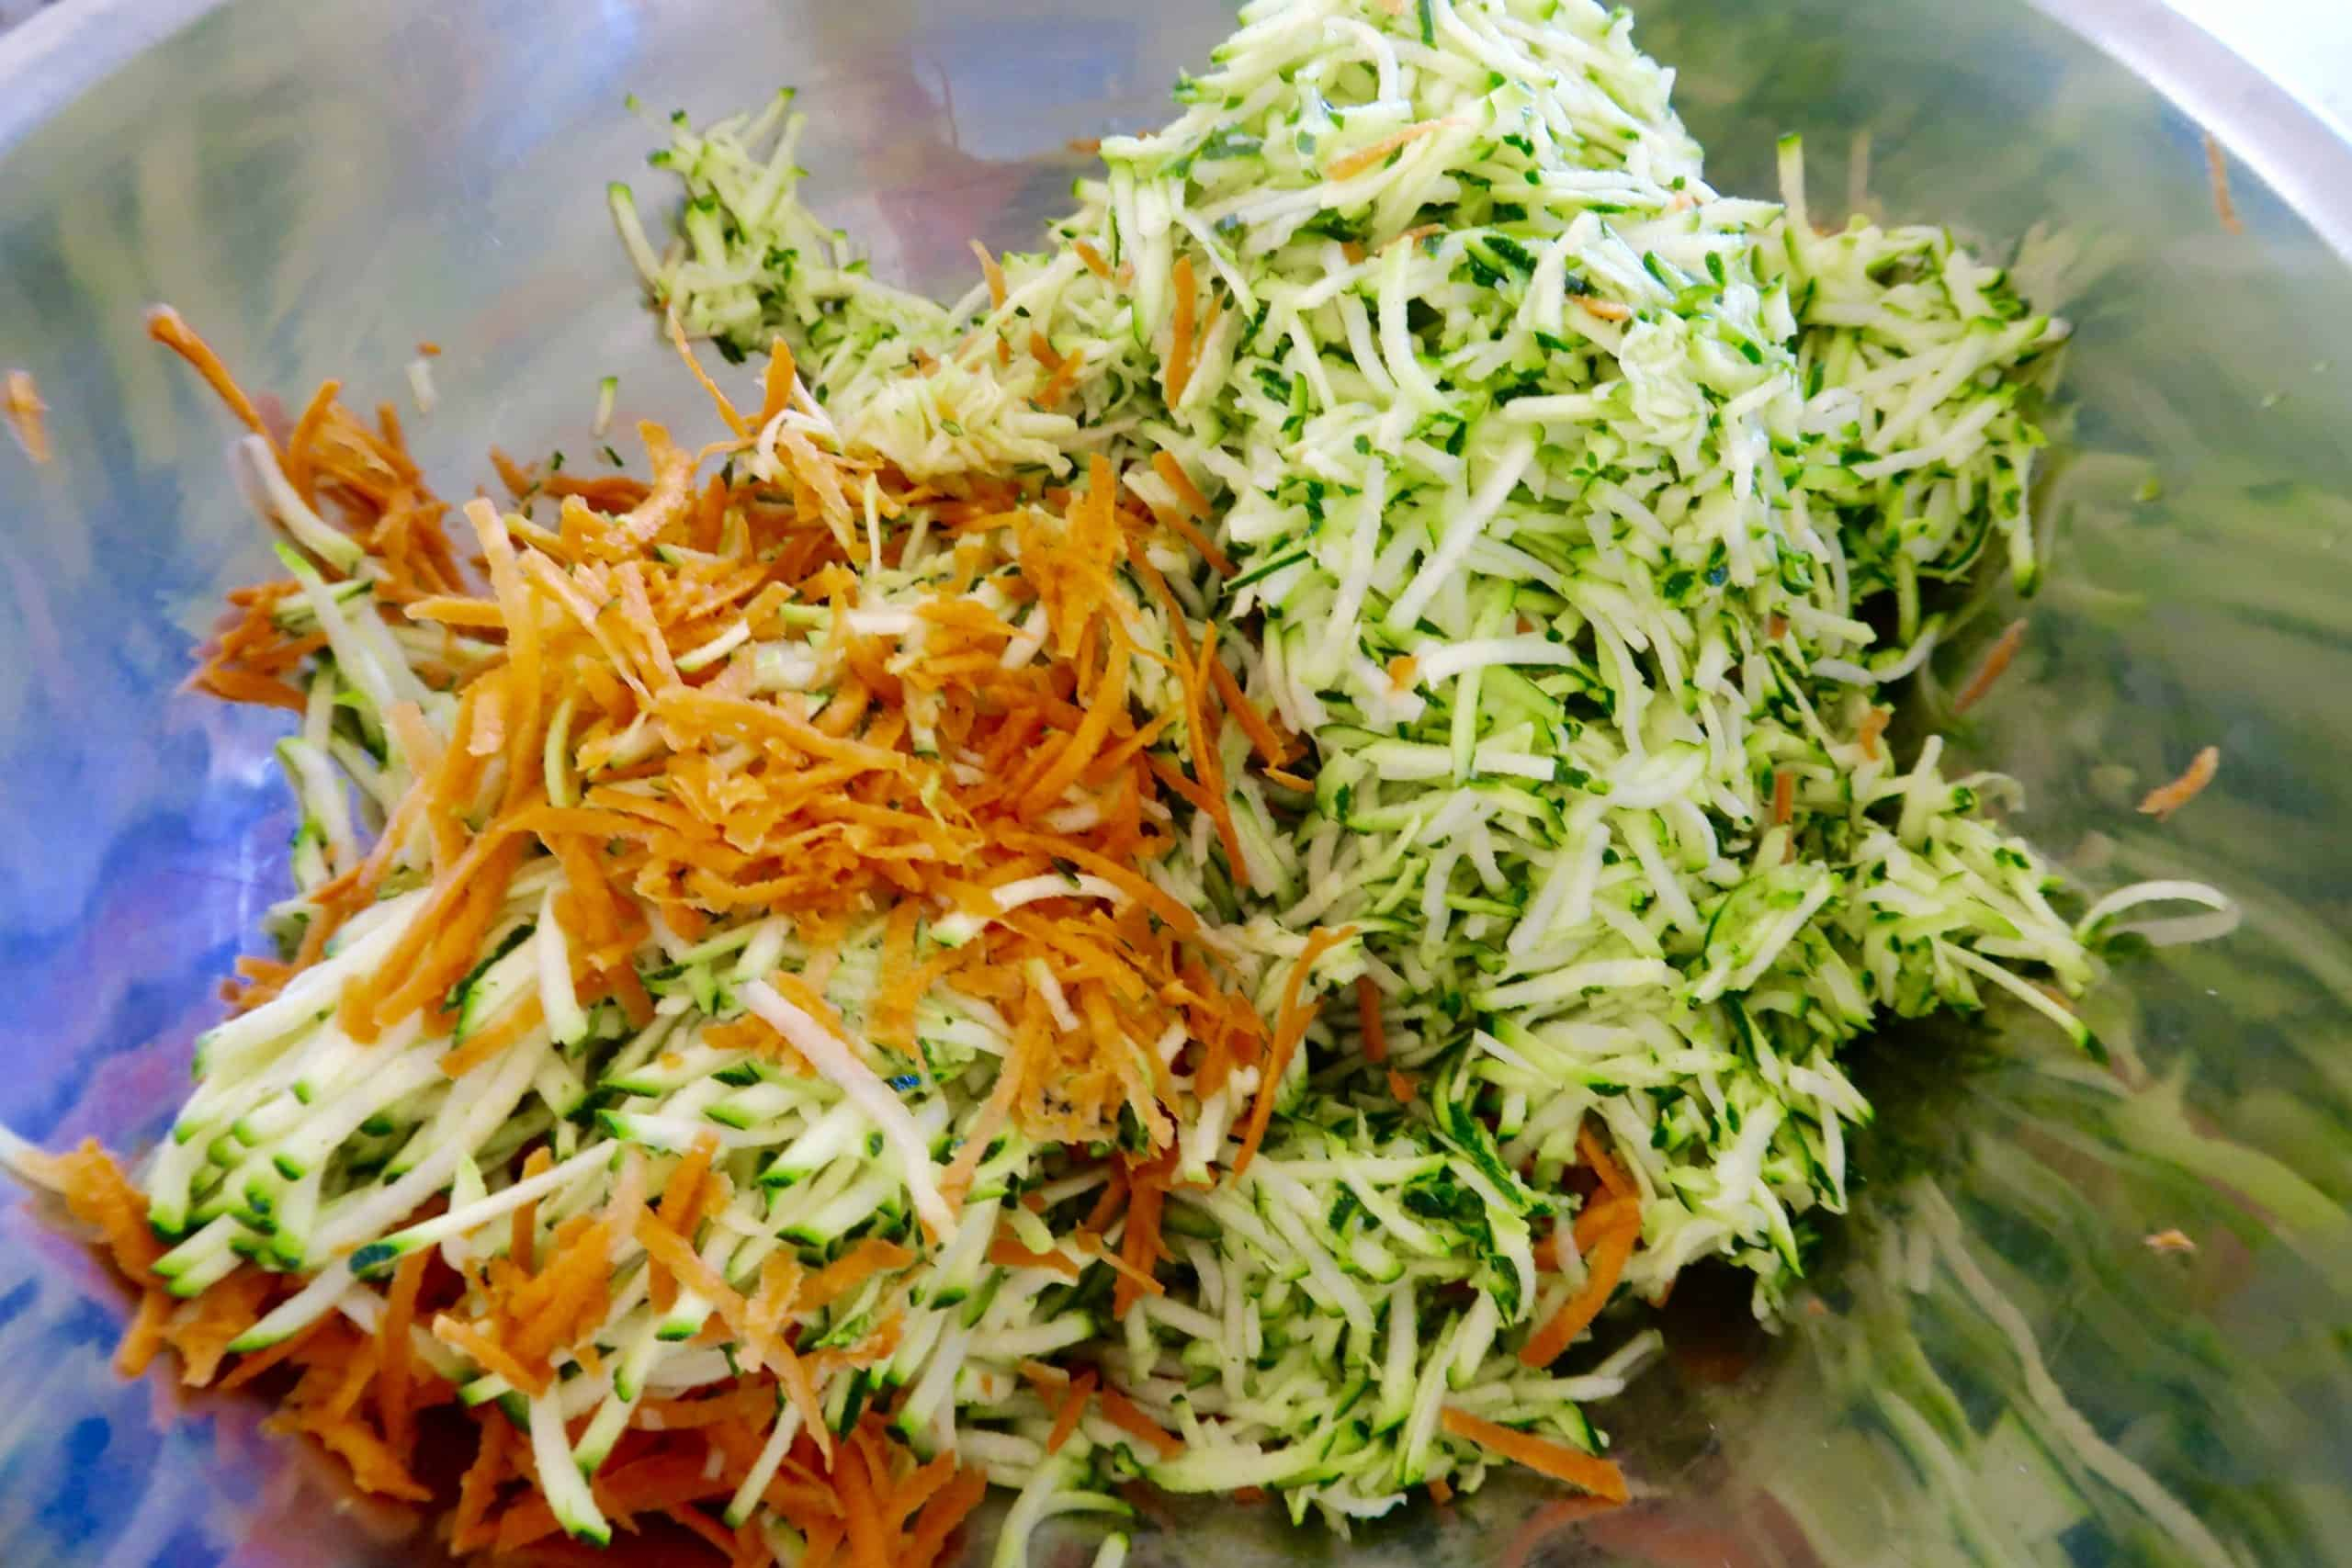 zucchini and bacon slice zucchini and carrot grated in a silver bowl